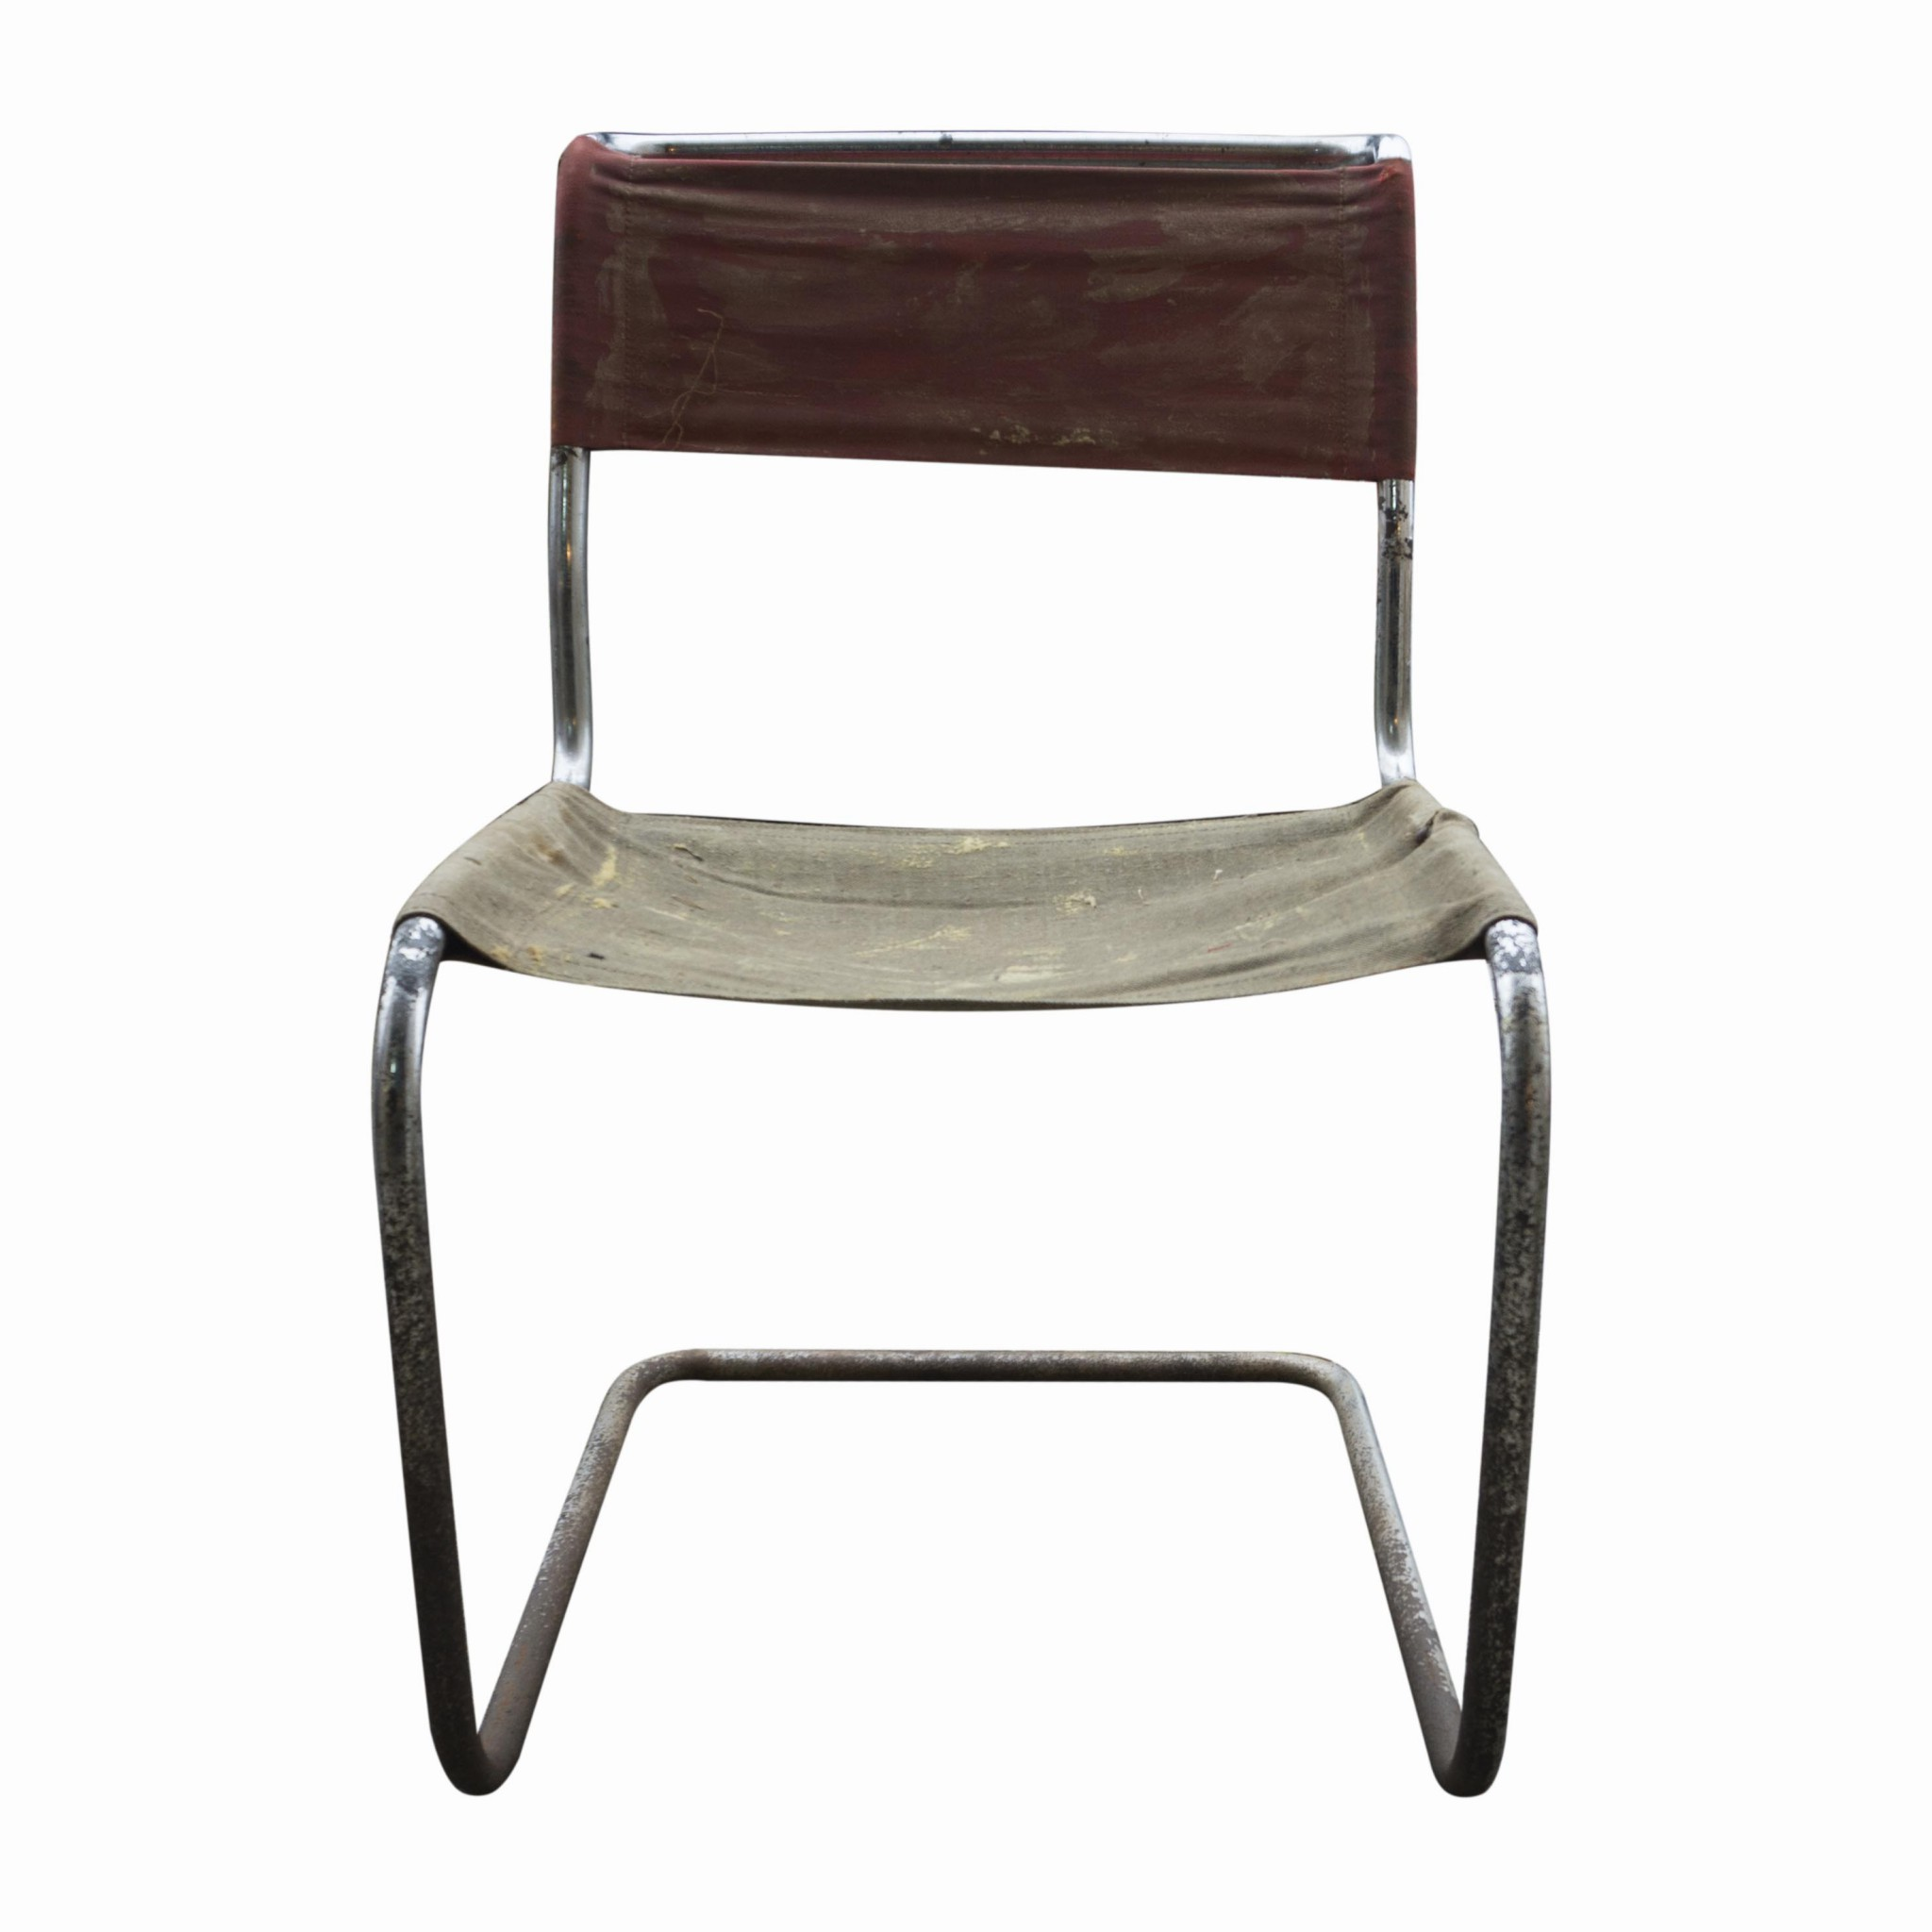 Marcel breuer chair b33 always chapter 24 cesca chair for Chaise wassily